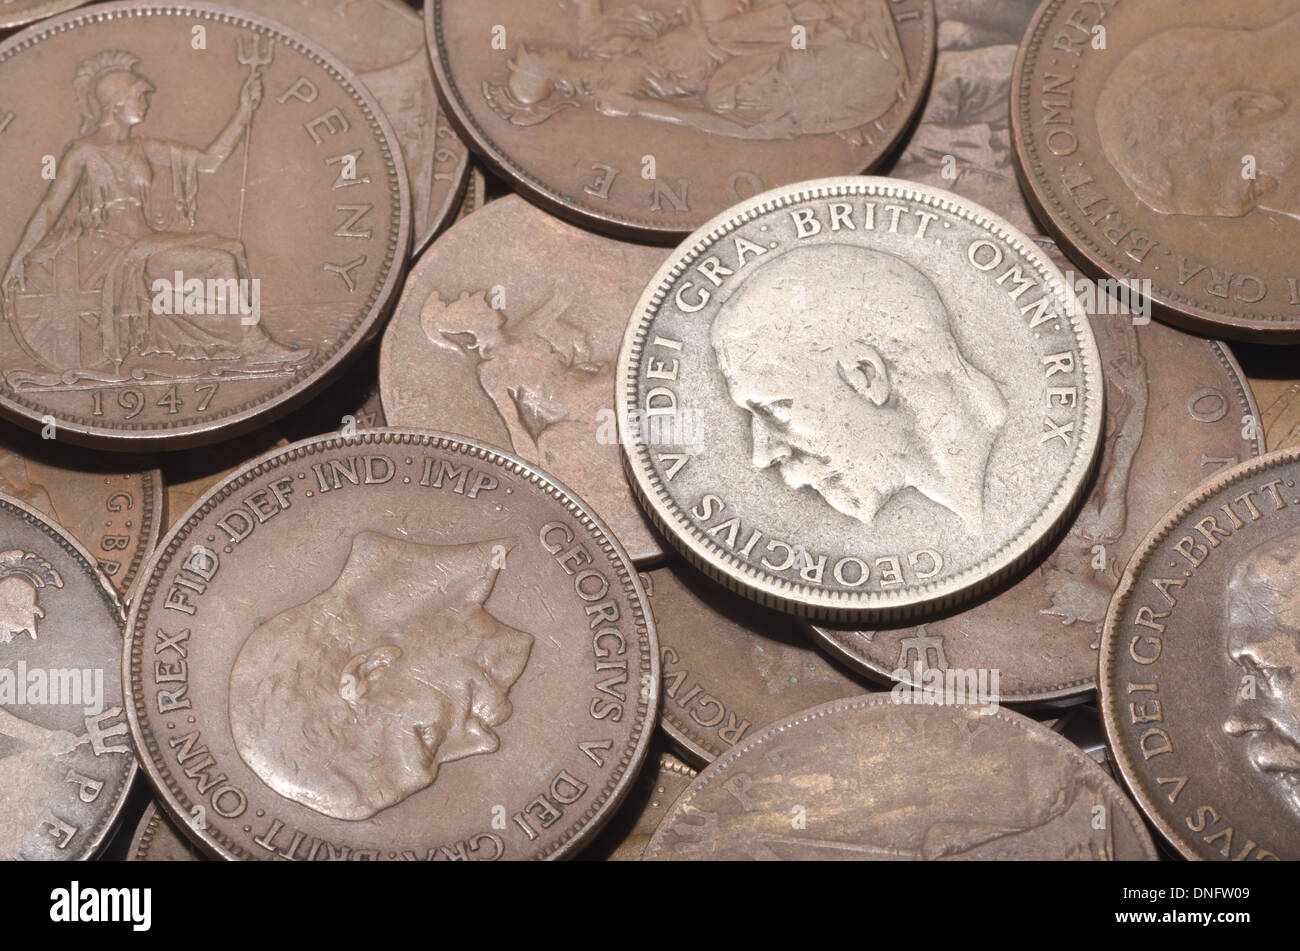 old currency uk penny 1d with King George V and Queen